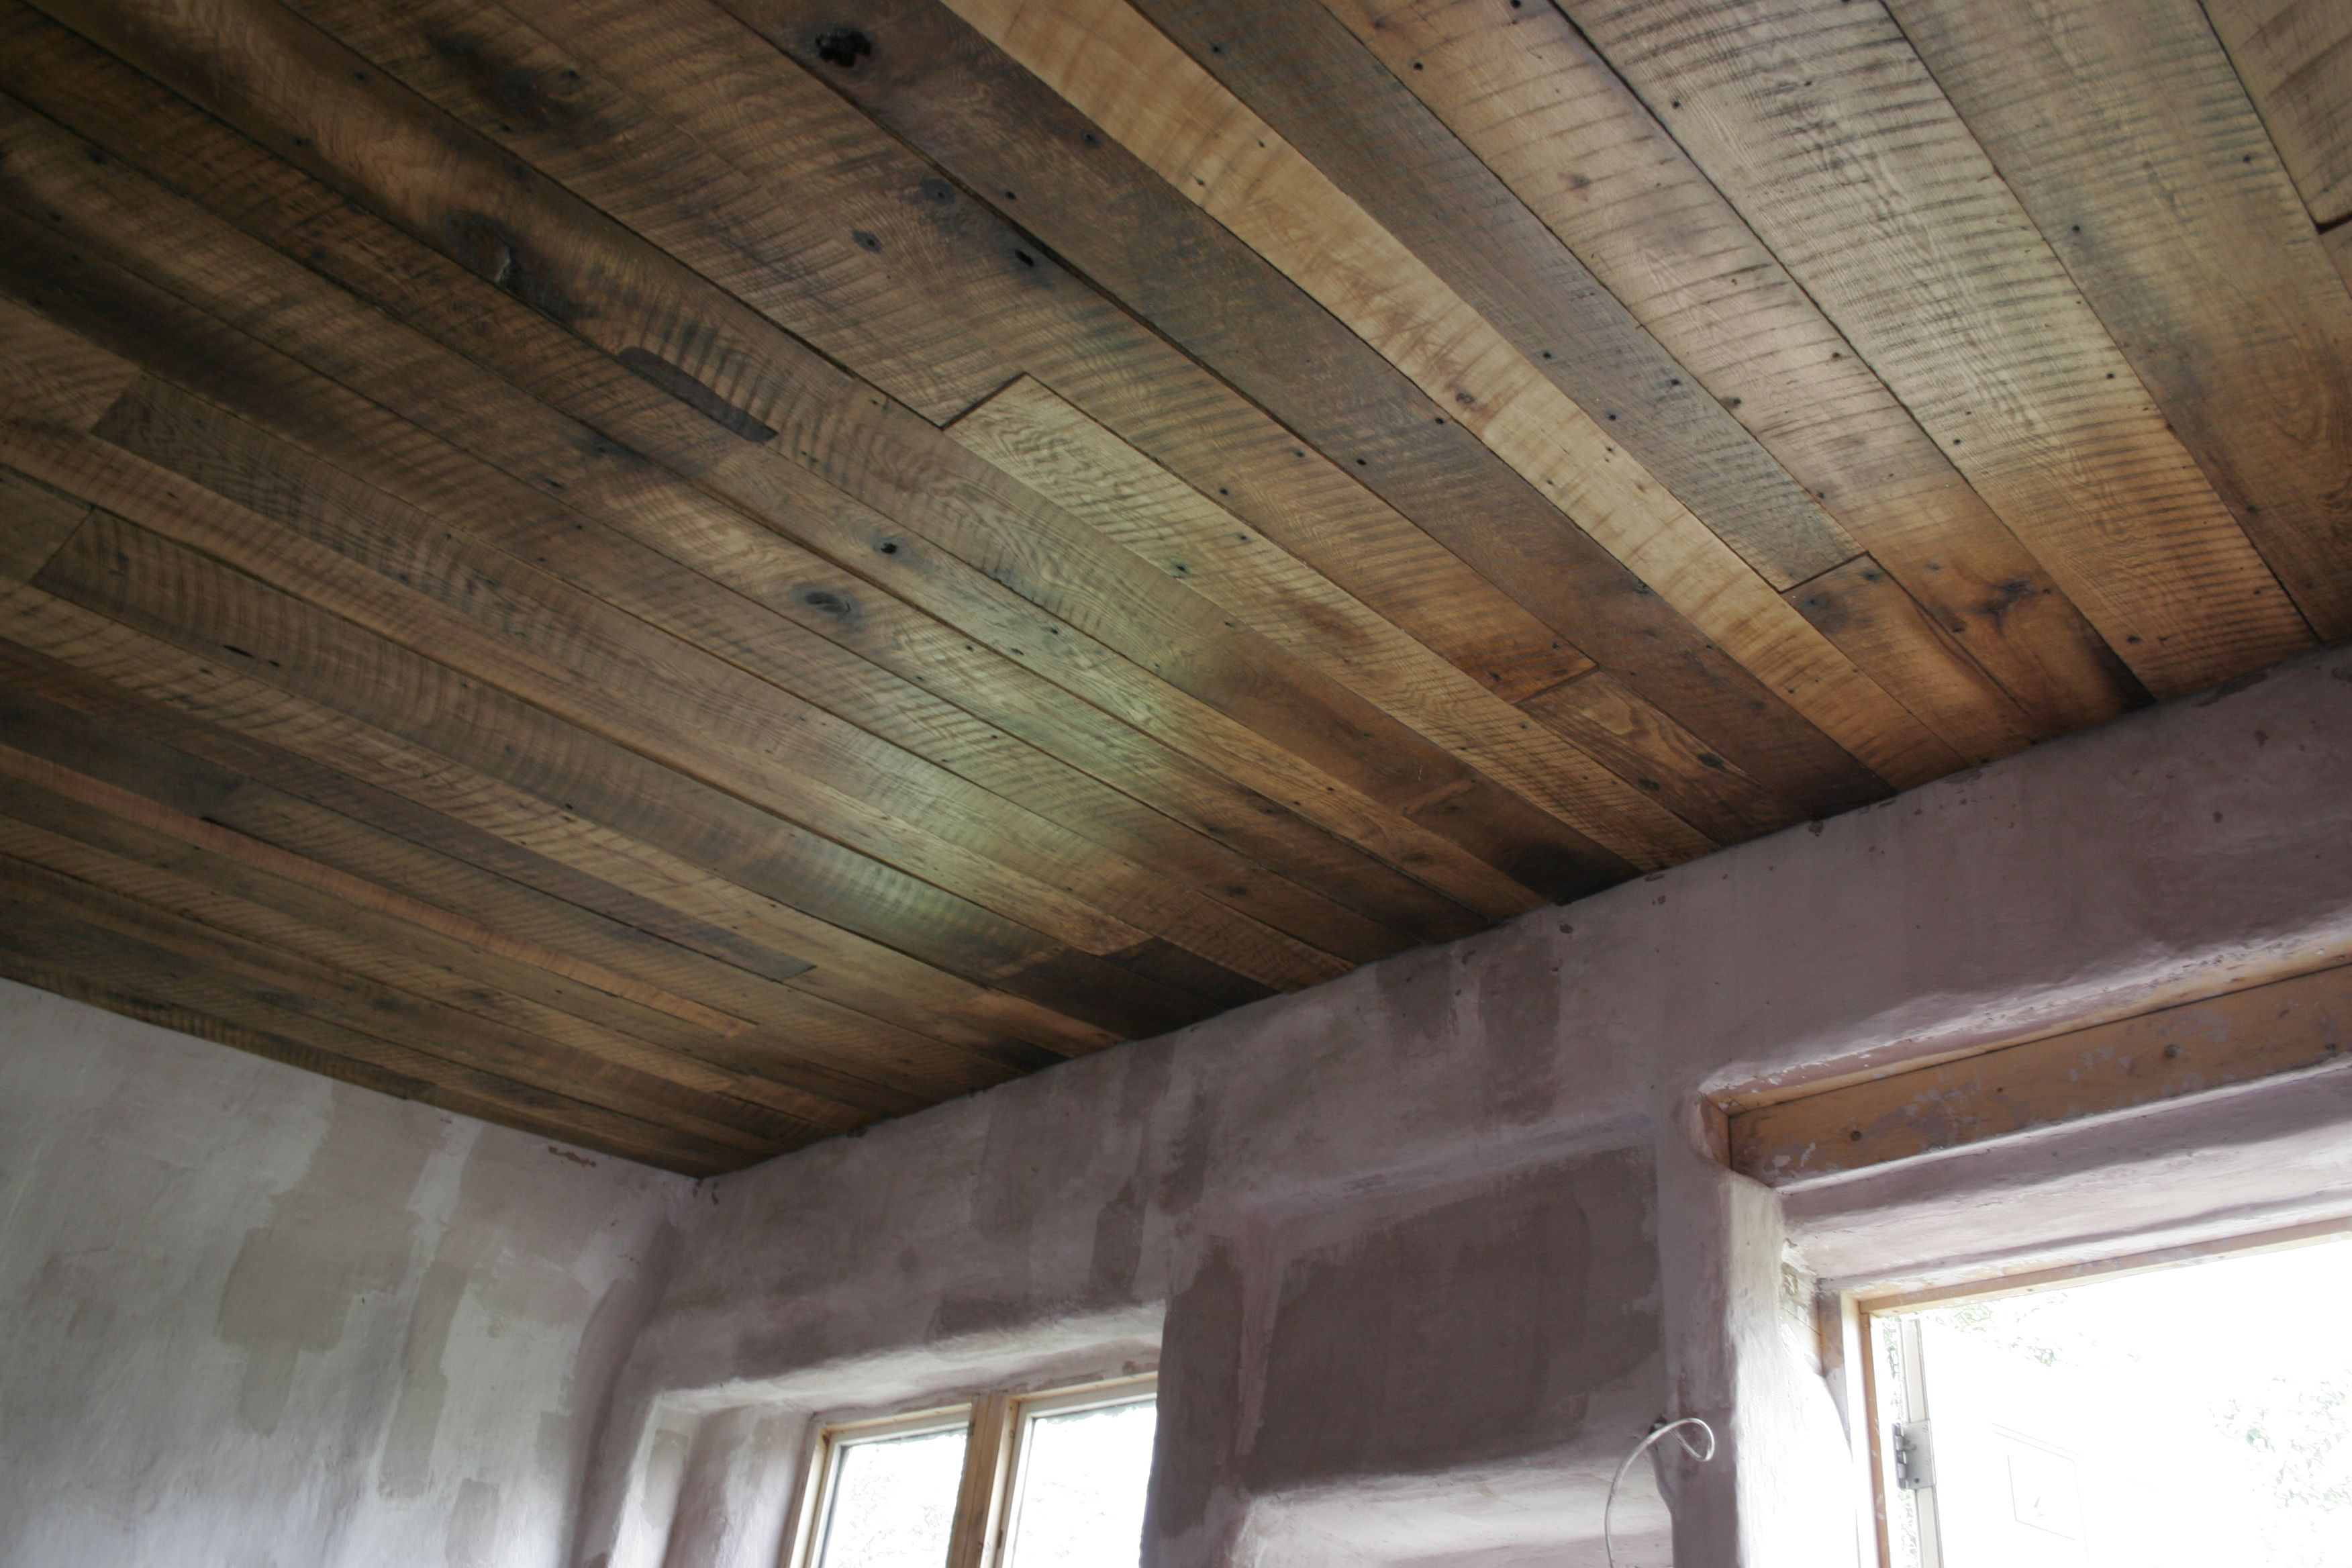 Wood Ceiling Treatments A Rustic Barn Board Ceiling For The Cottage Black Abbot